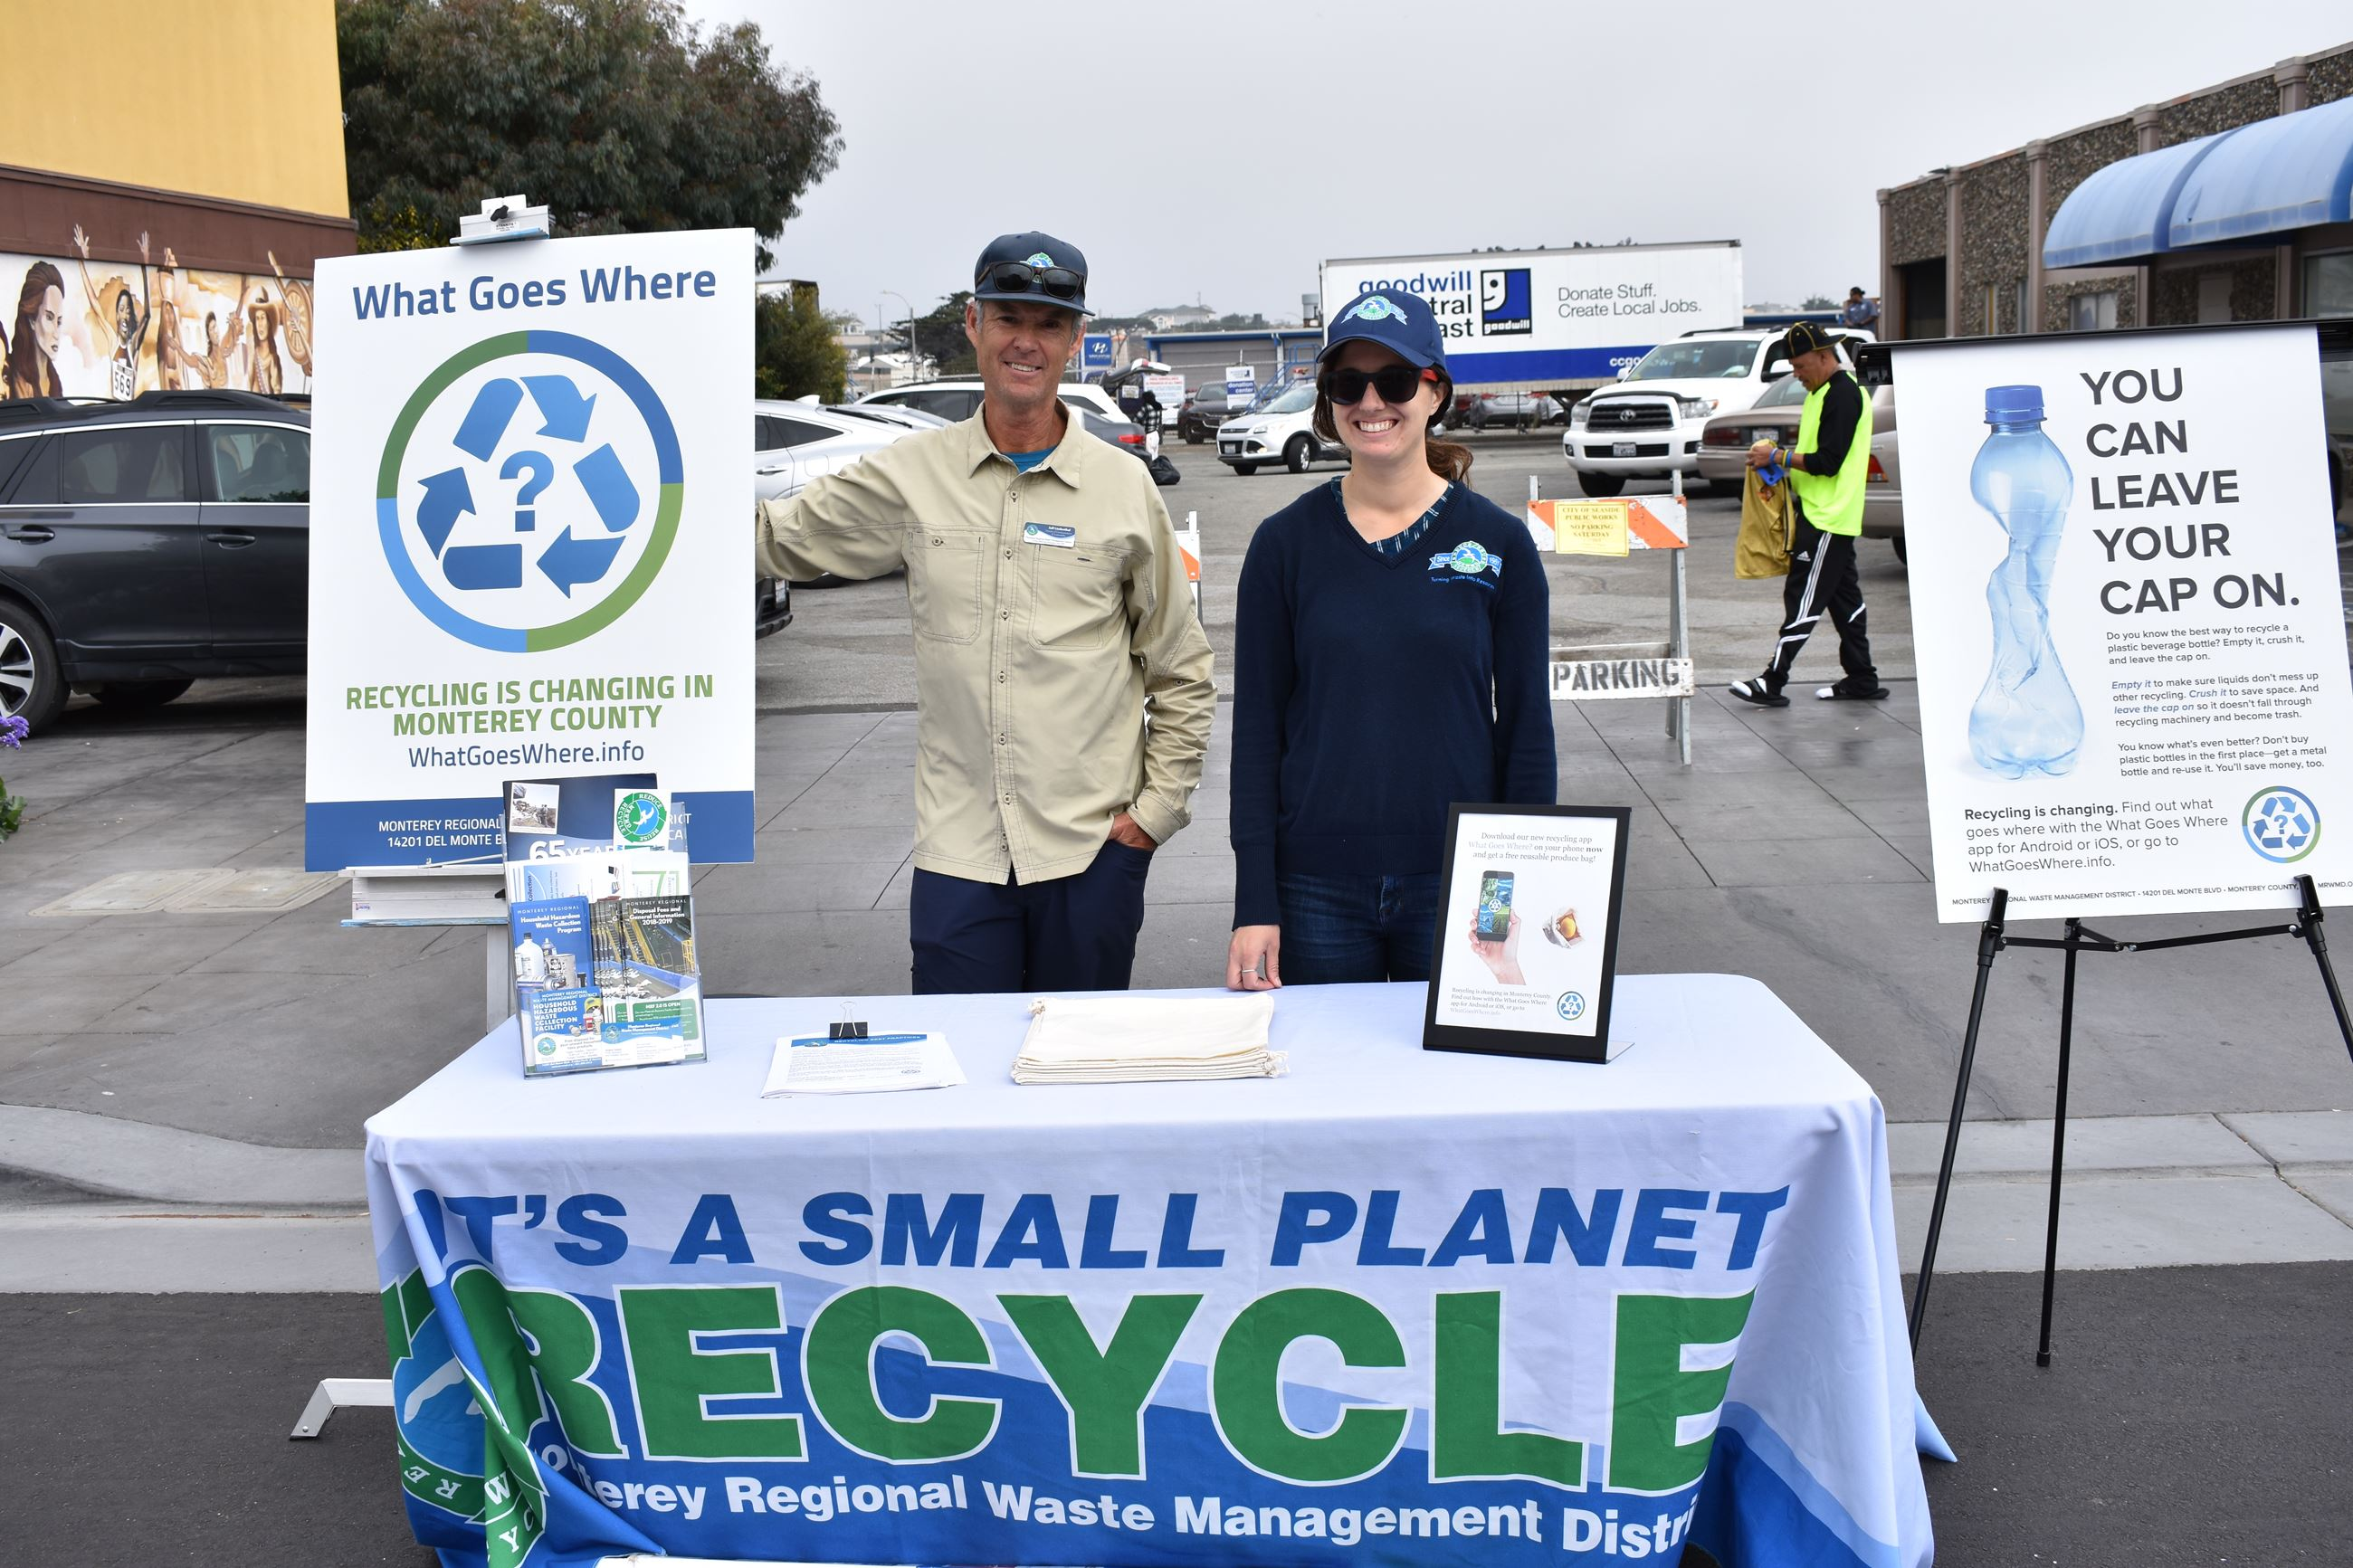 Photo from PARKing Day 2018